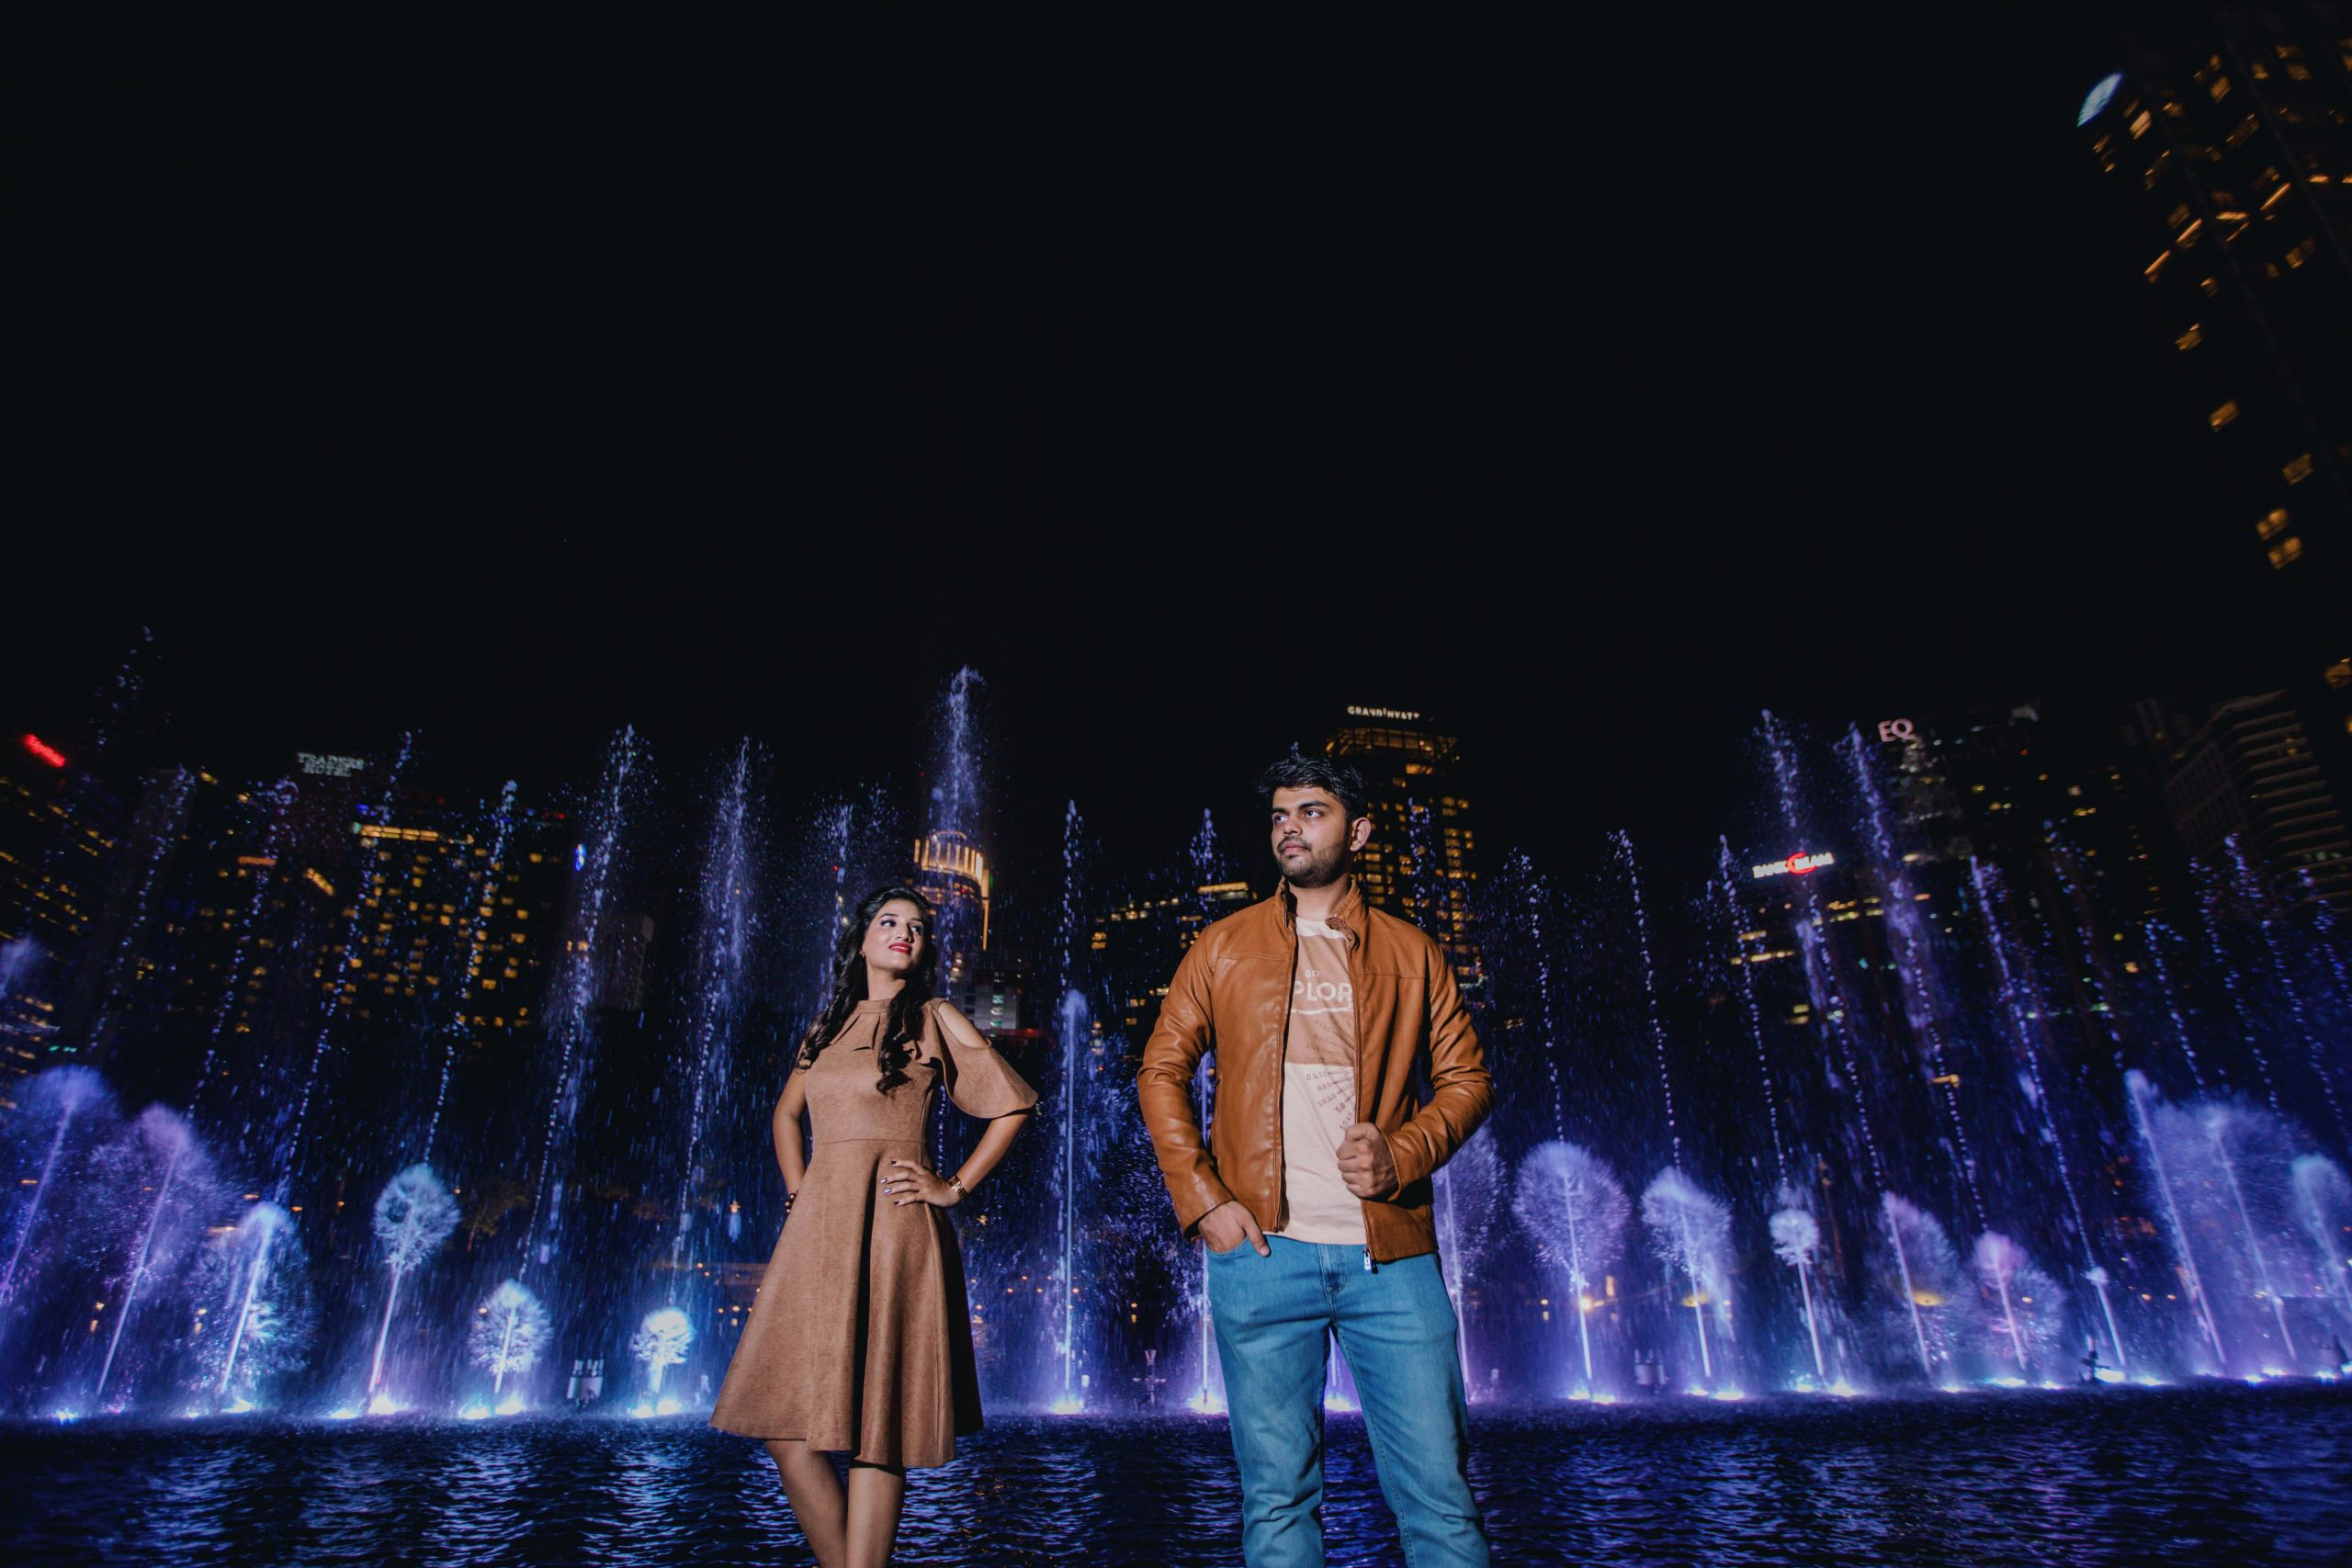 man and woman standing in front of fountain in park